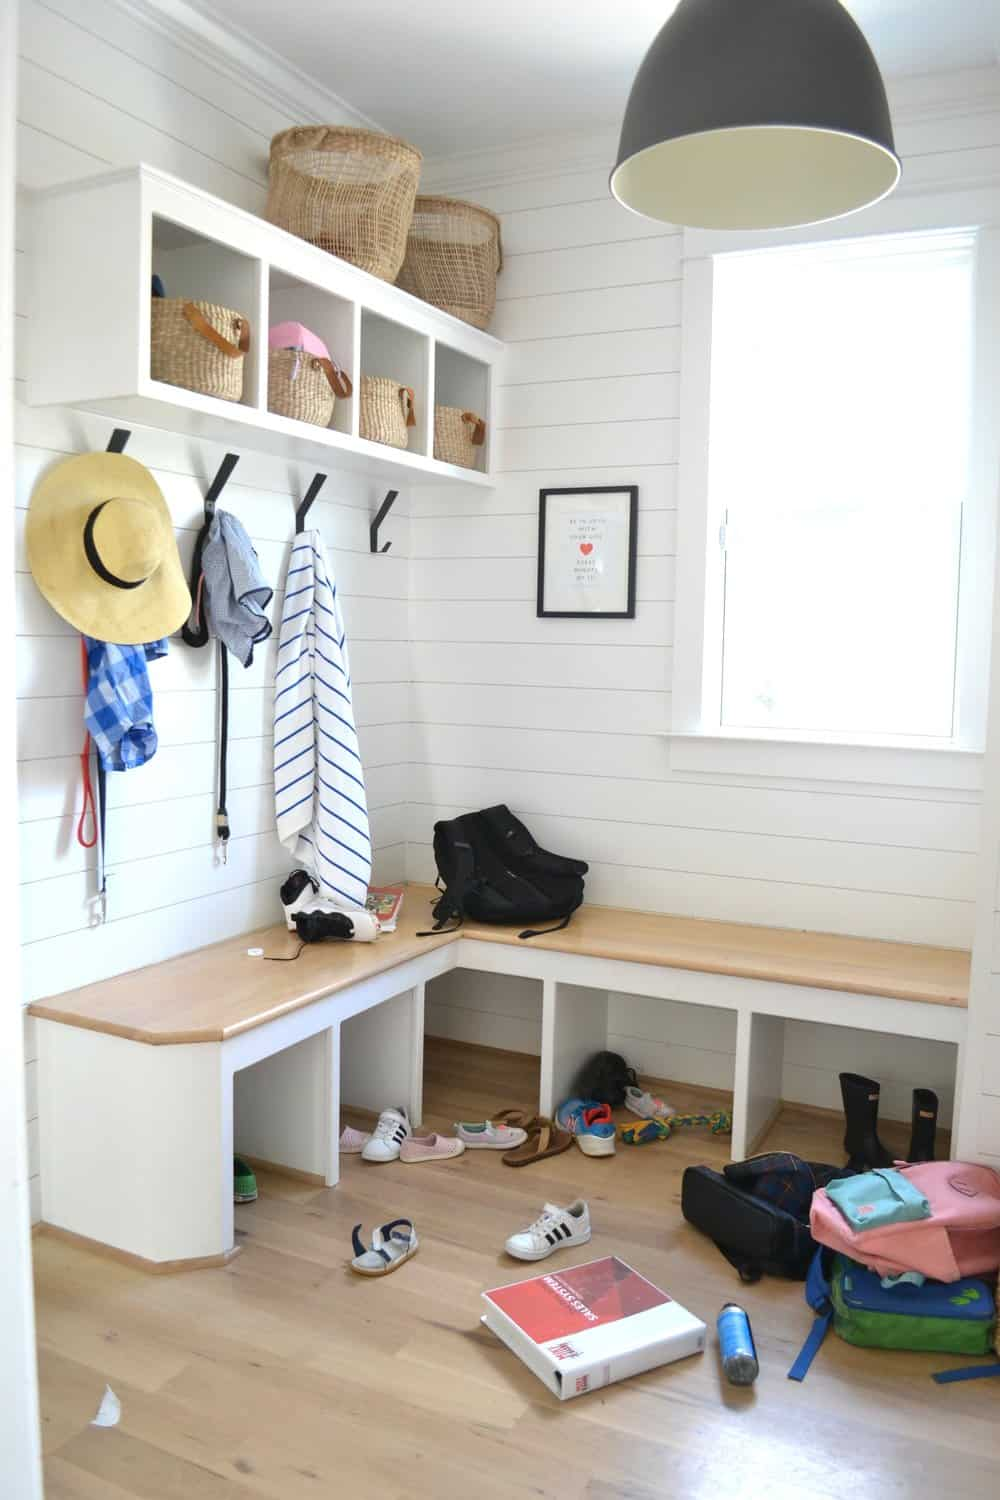 mudroom that needs organizing for back to school